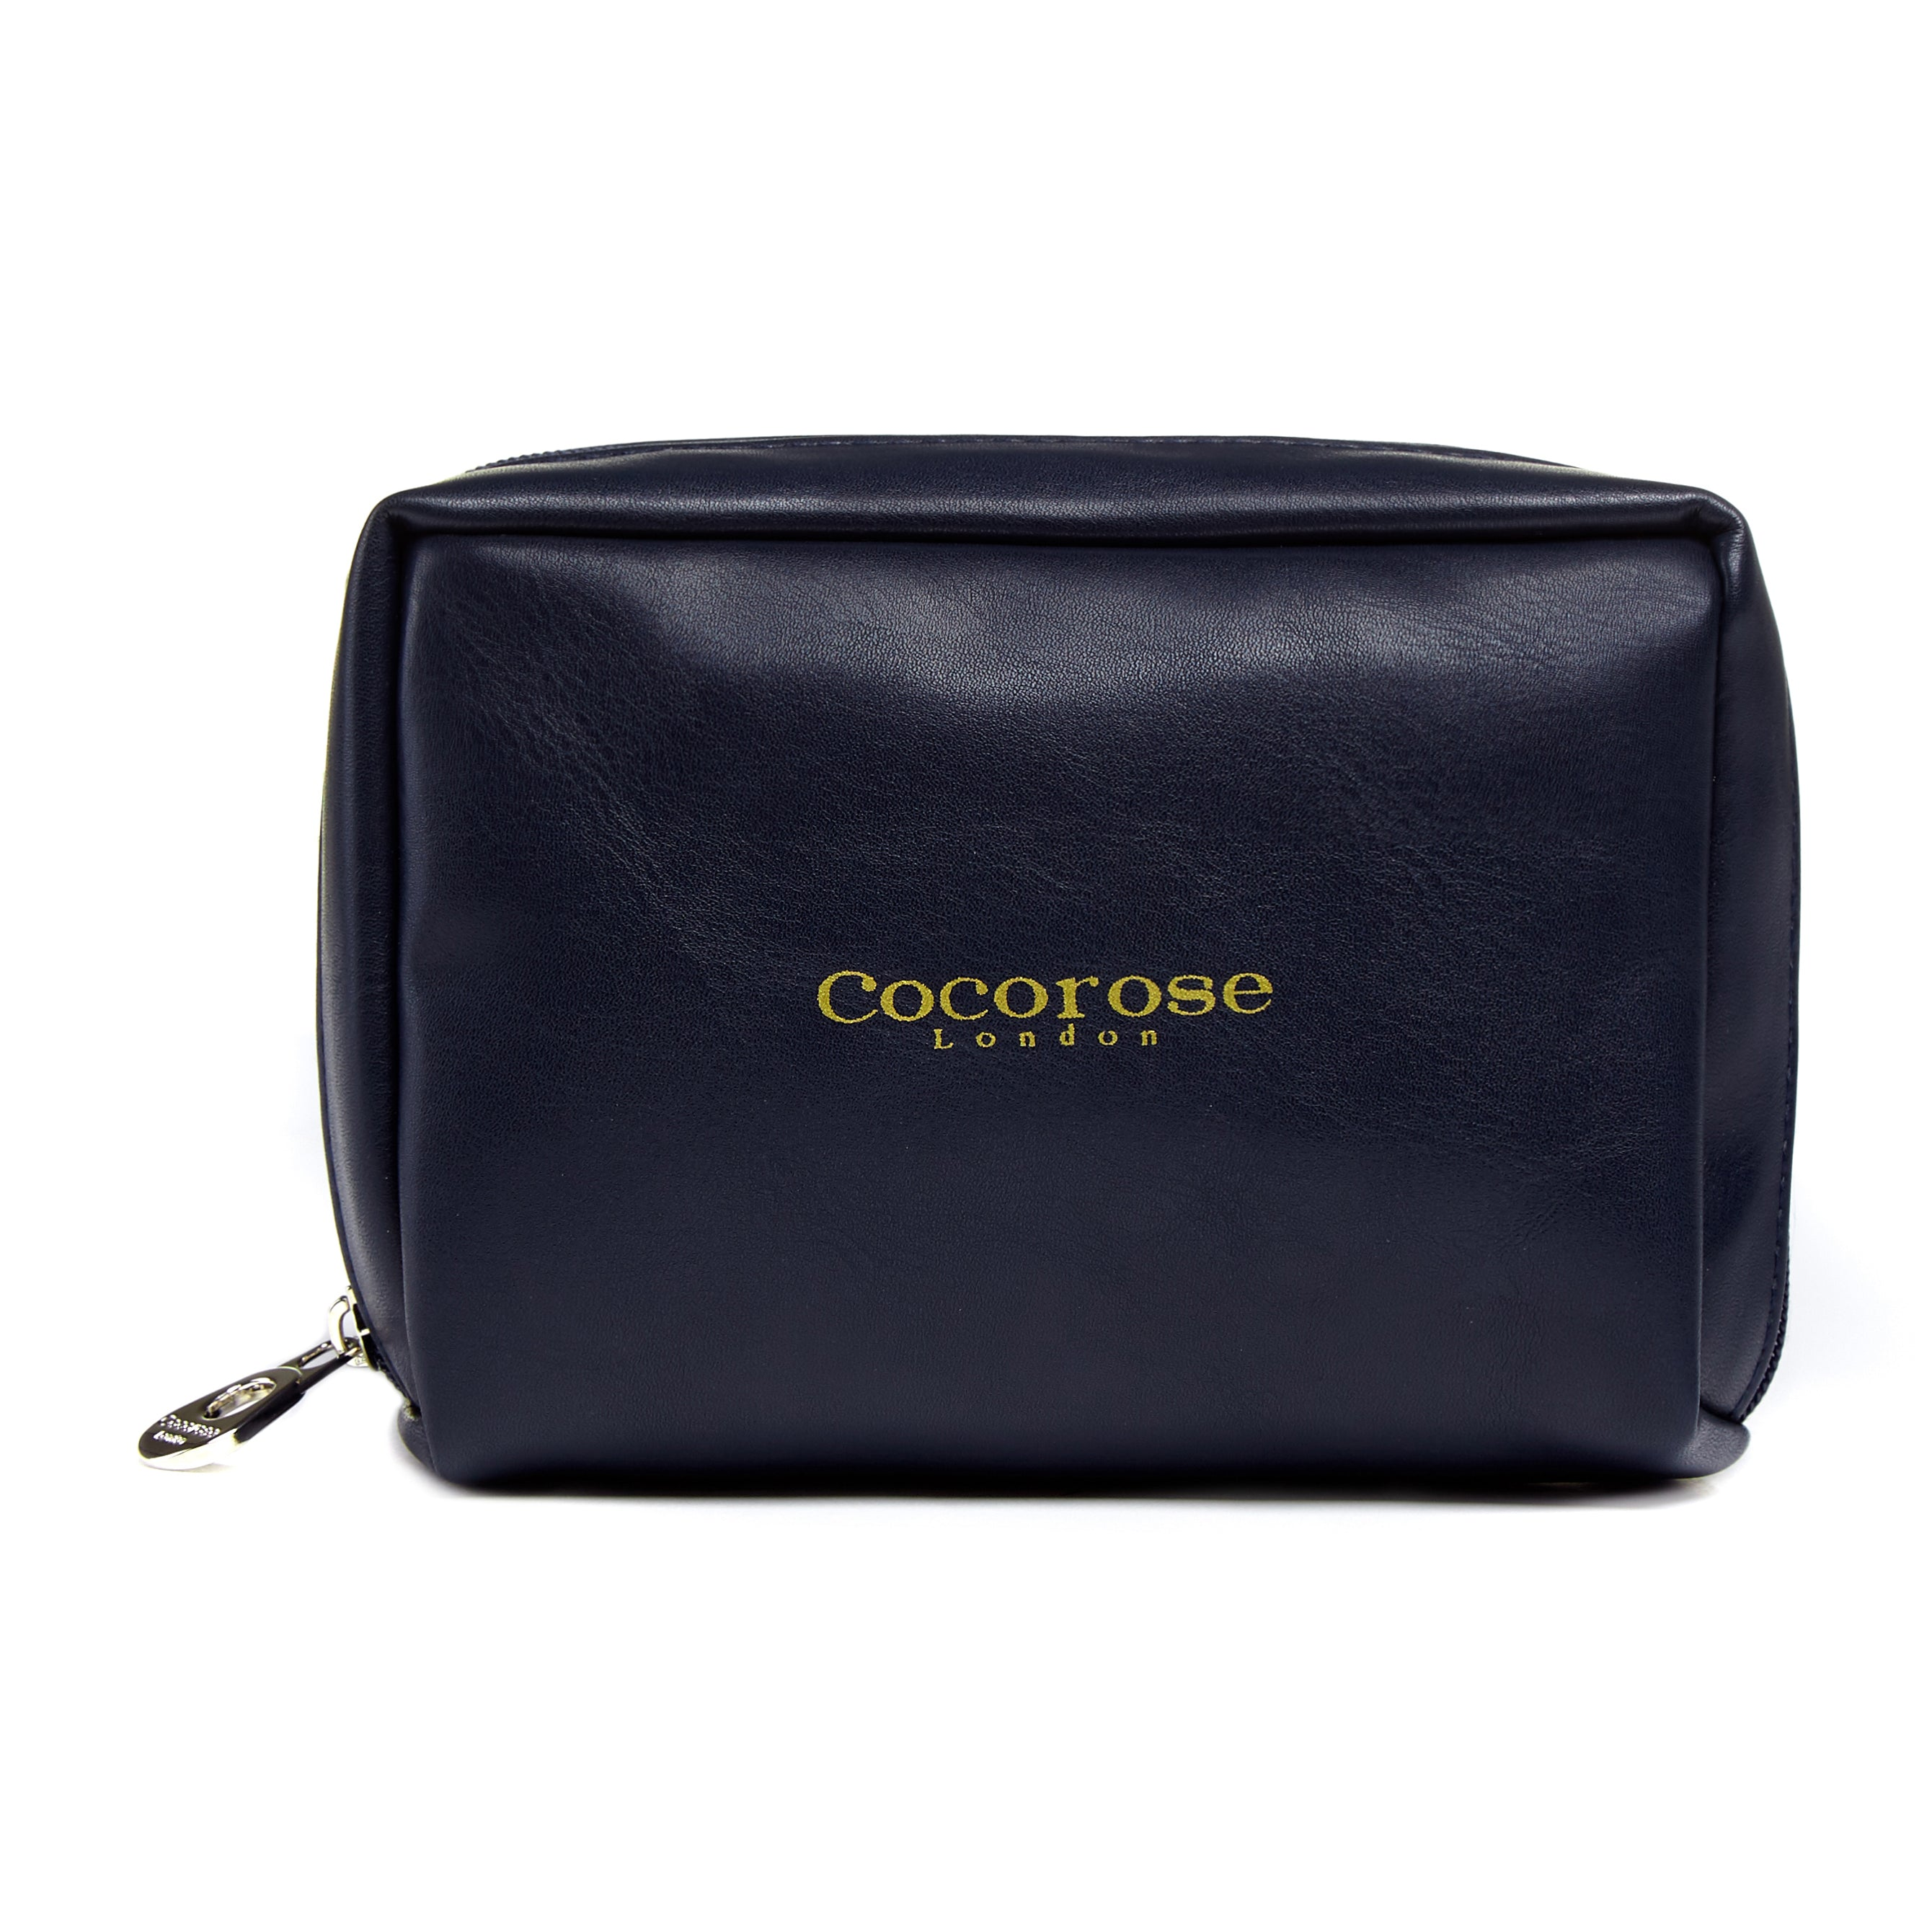 Cocorose London's Vegan Greenwich Style - Travel Purse for Navy Foldable Shoes